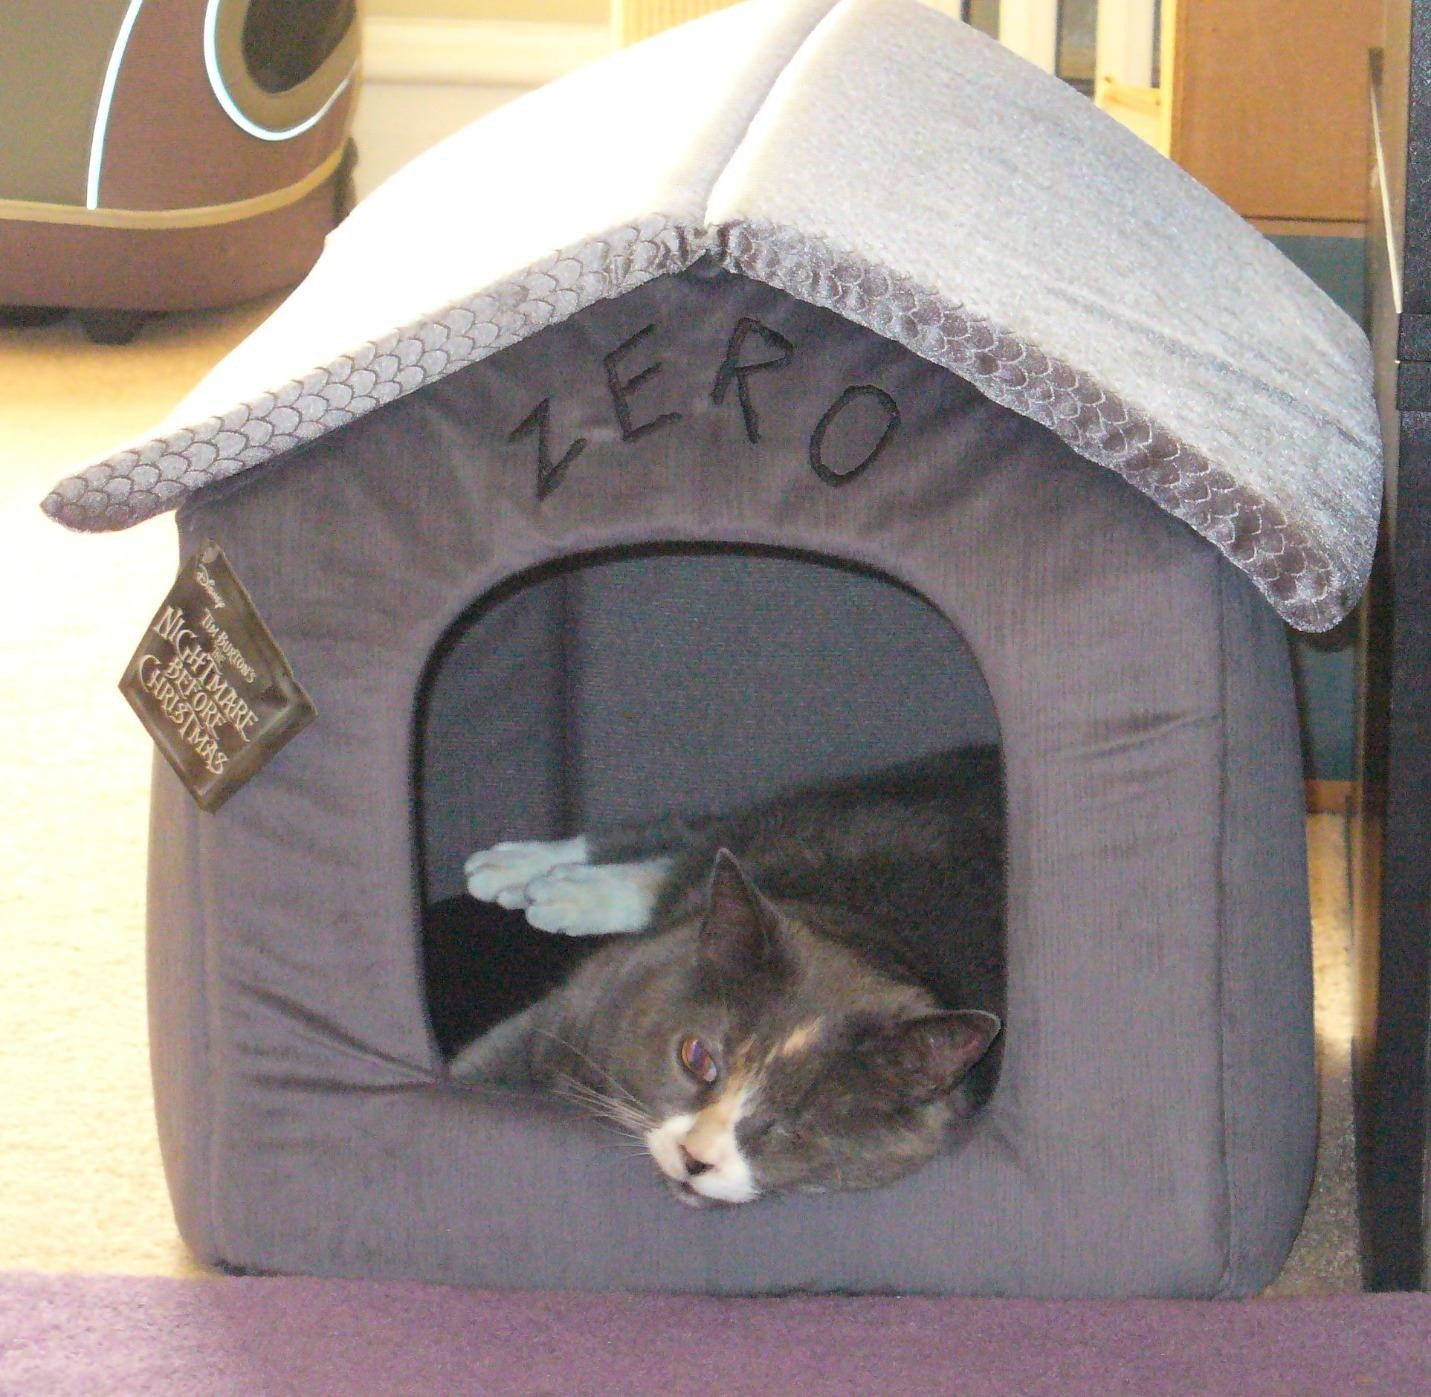 The small pet house/ bed, which has a rounded opening, grey body, and soft, removable roof